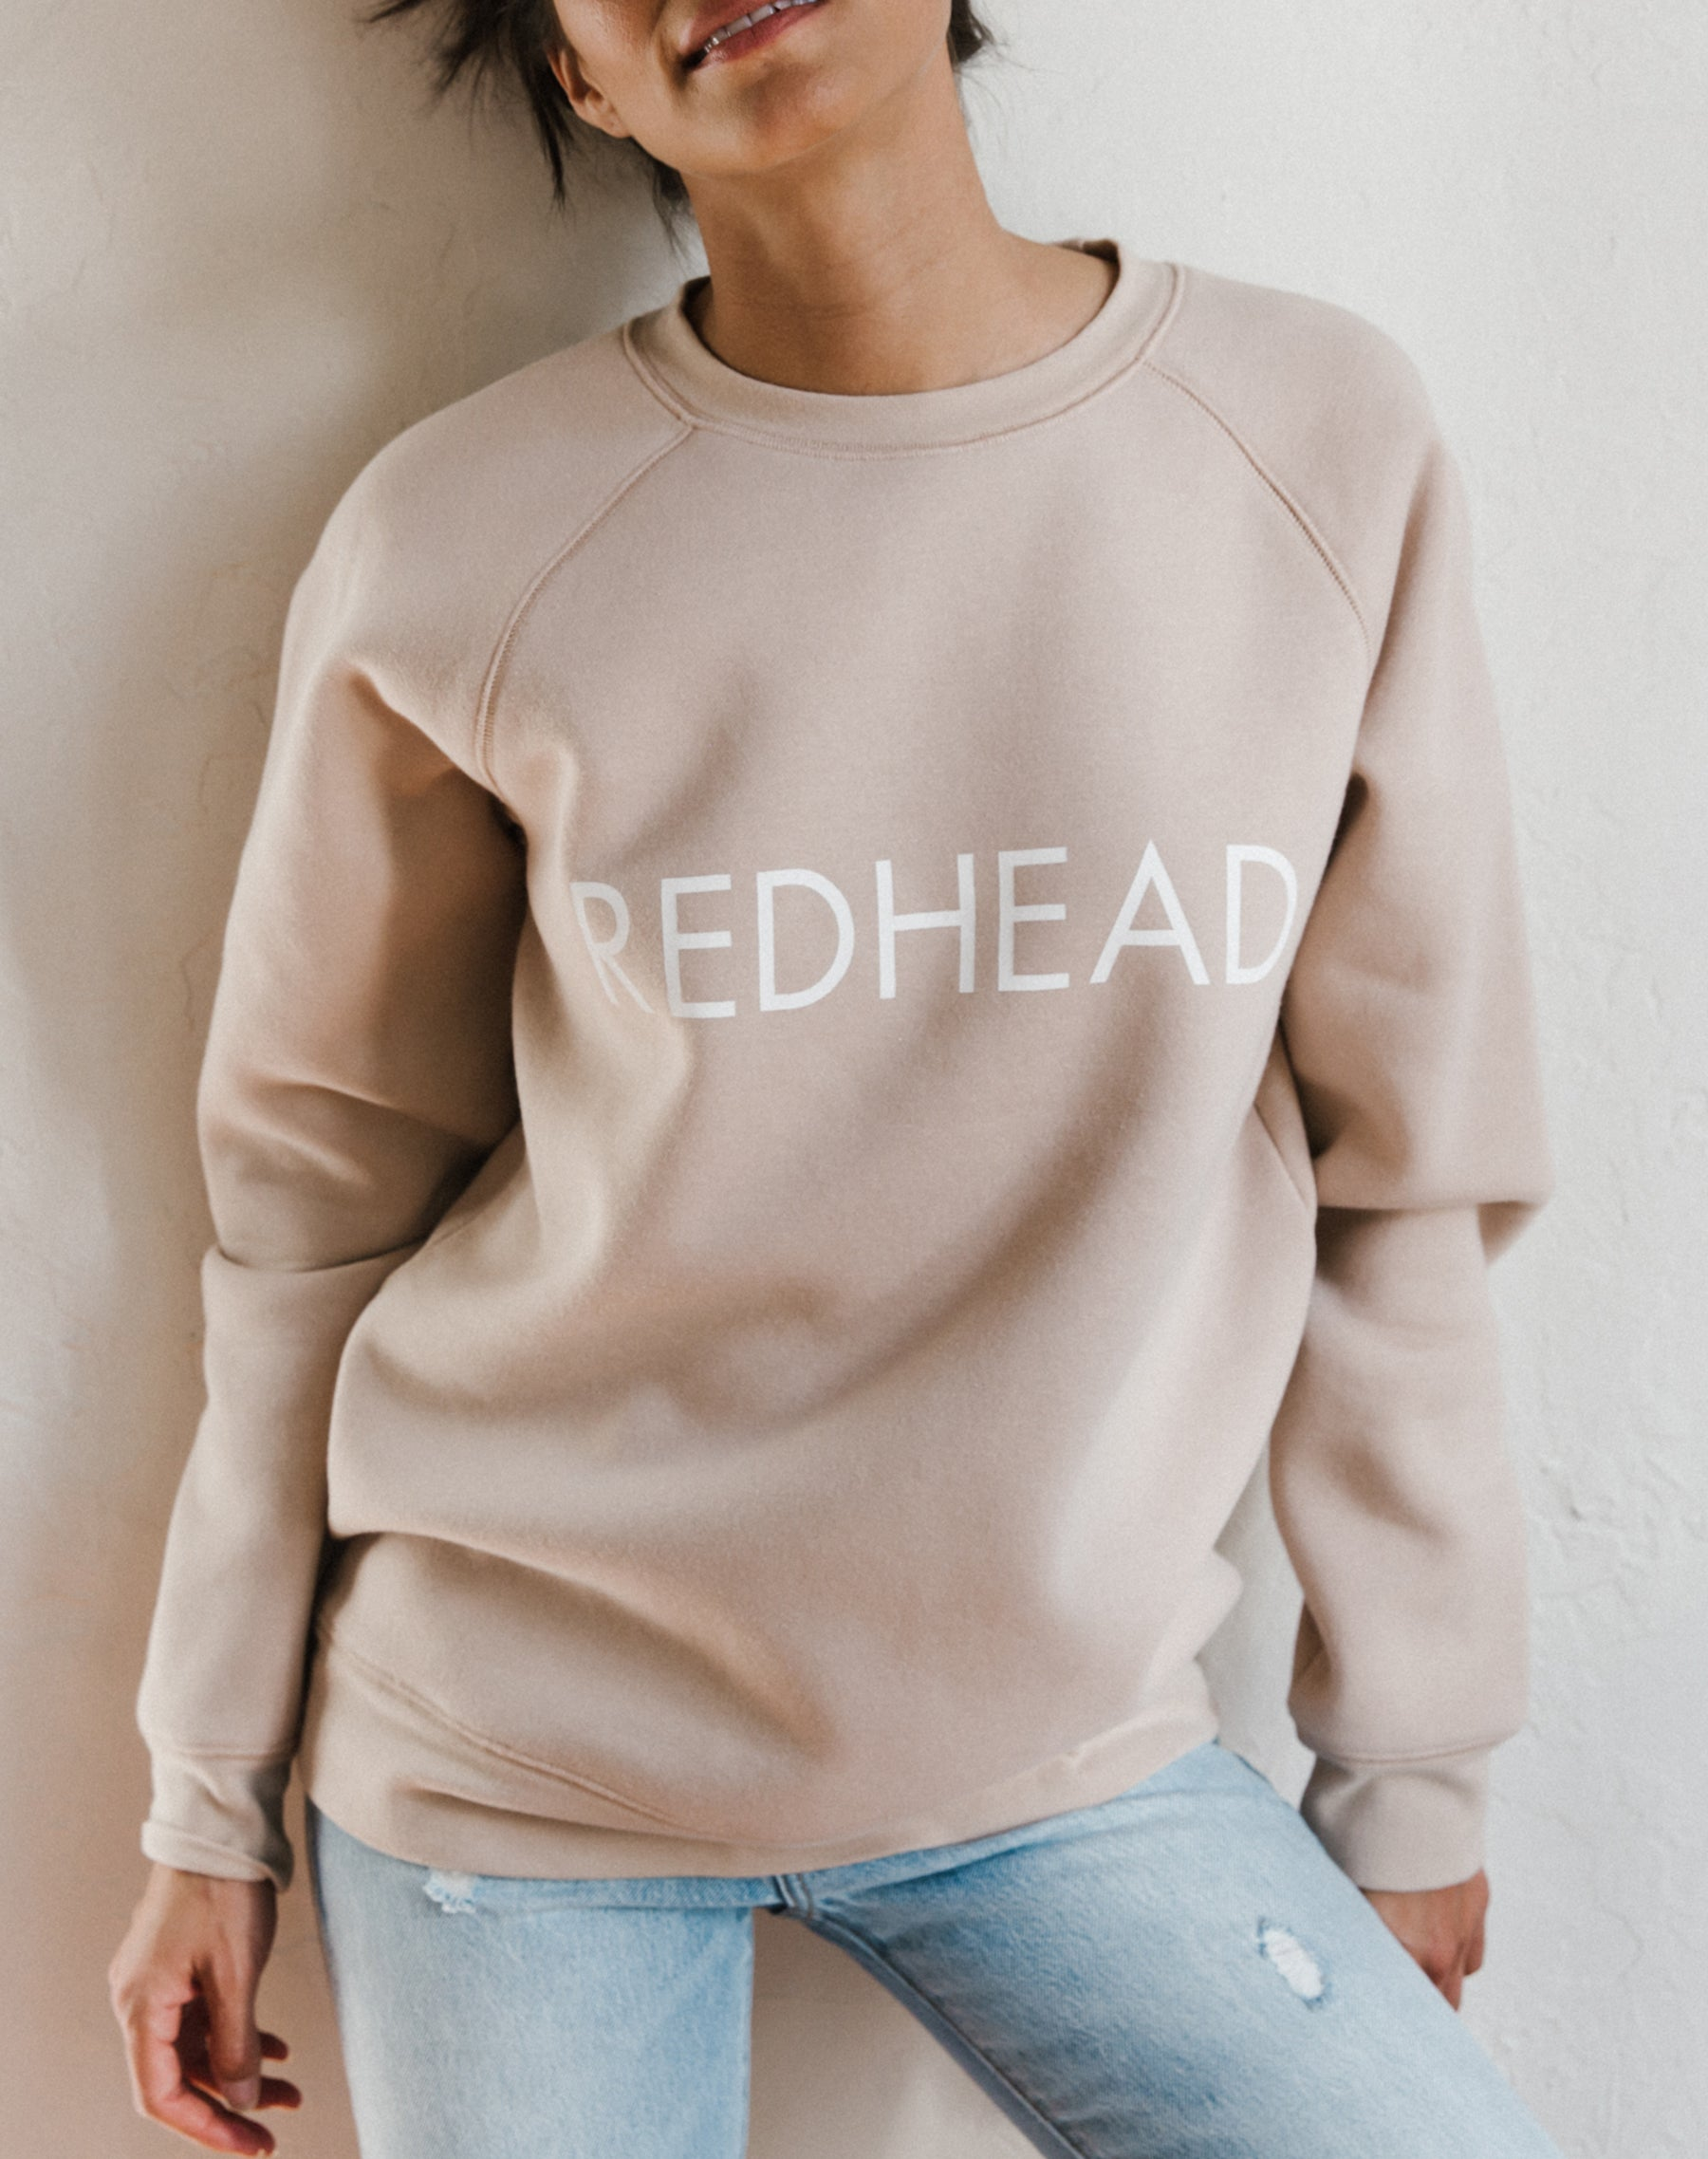 Photo of the Redhead classic crew neck sweatshirt in toasted almond by Brunette the label.